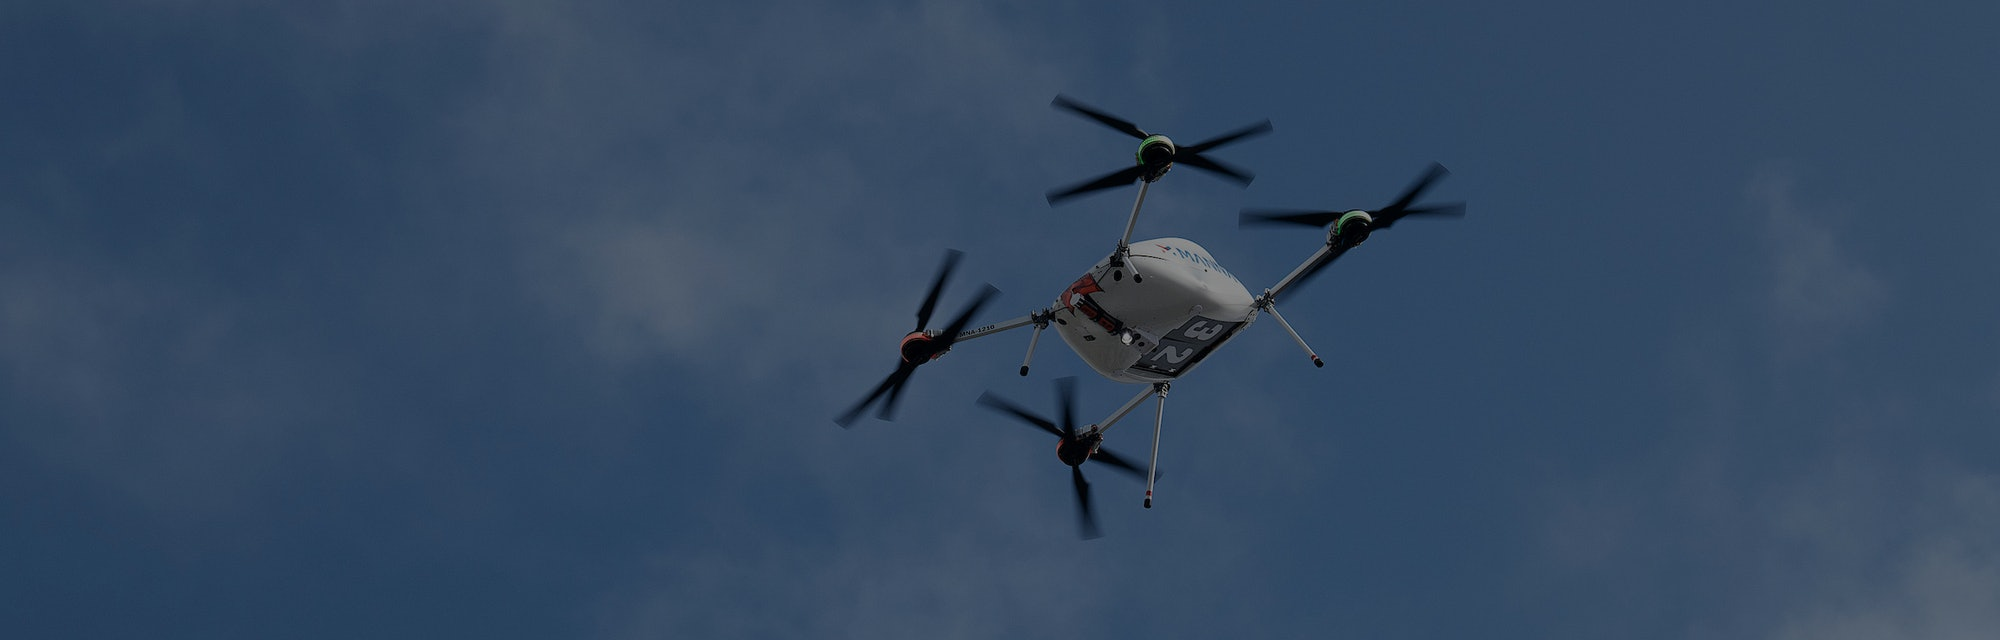 A Manna drone carrying a Samsung product is seen hovering in the air.